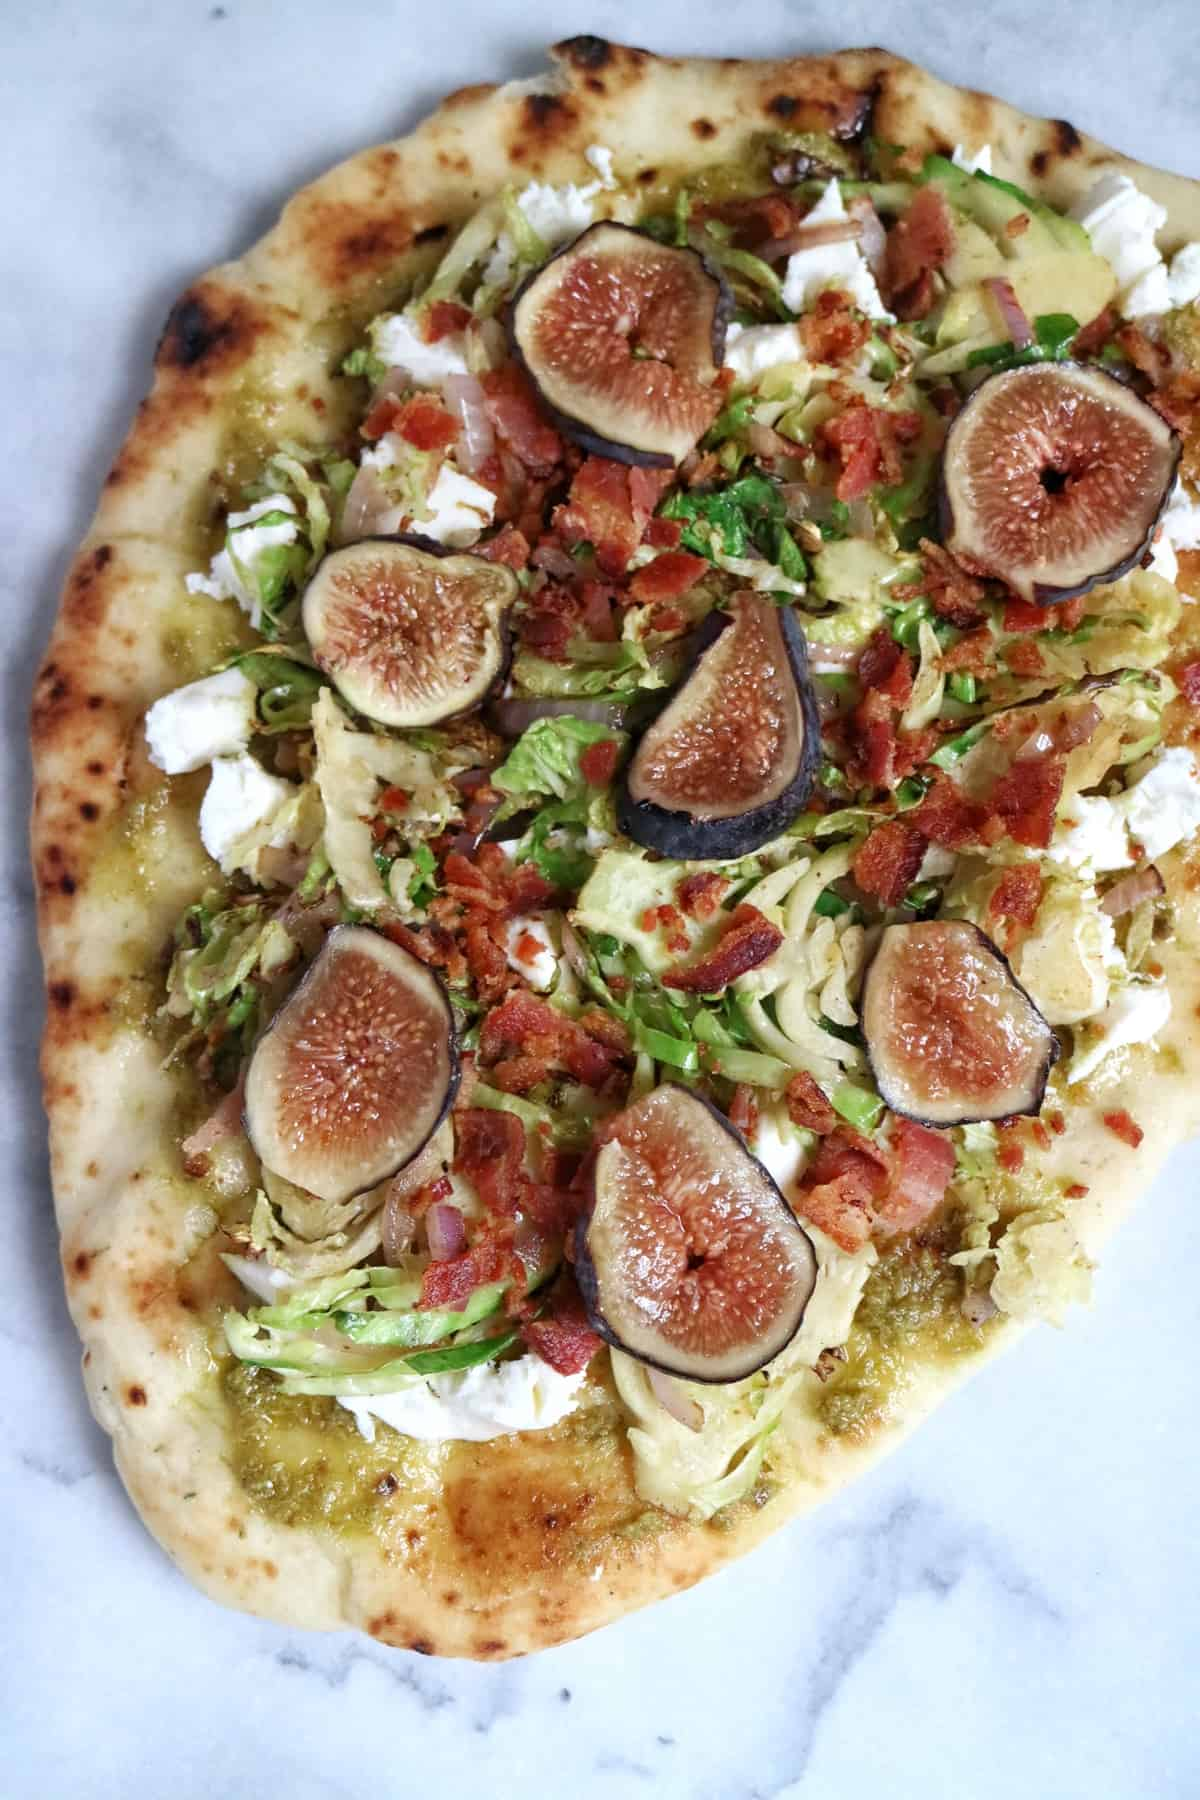 fresh figs on top of flatbread pizza with brussels and bacon